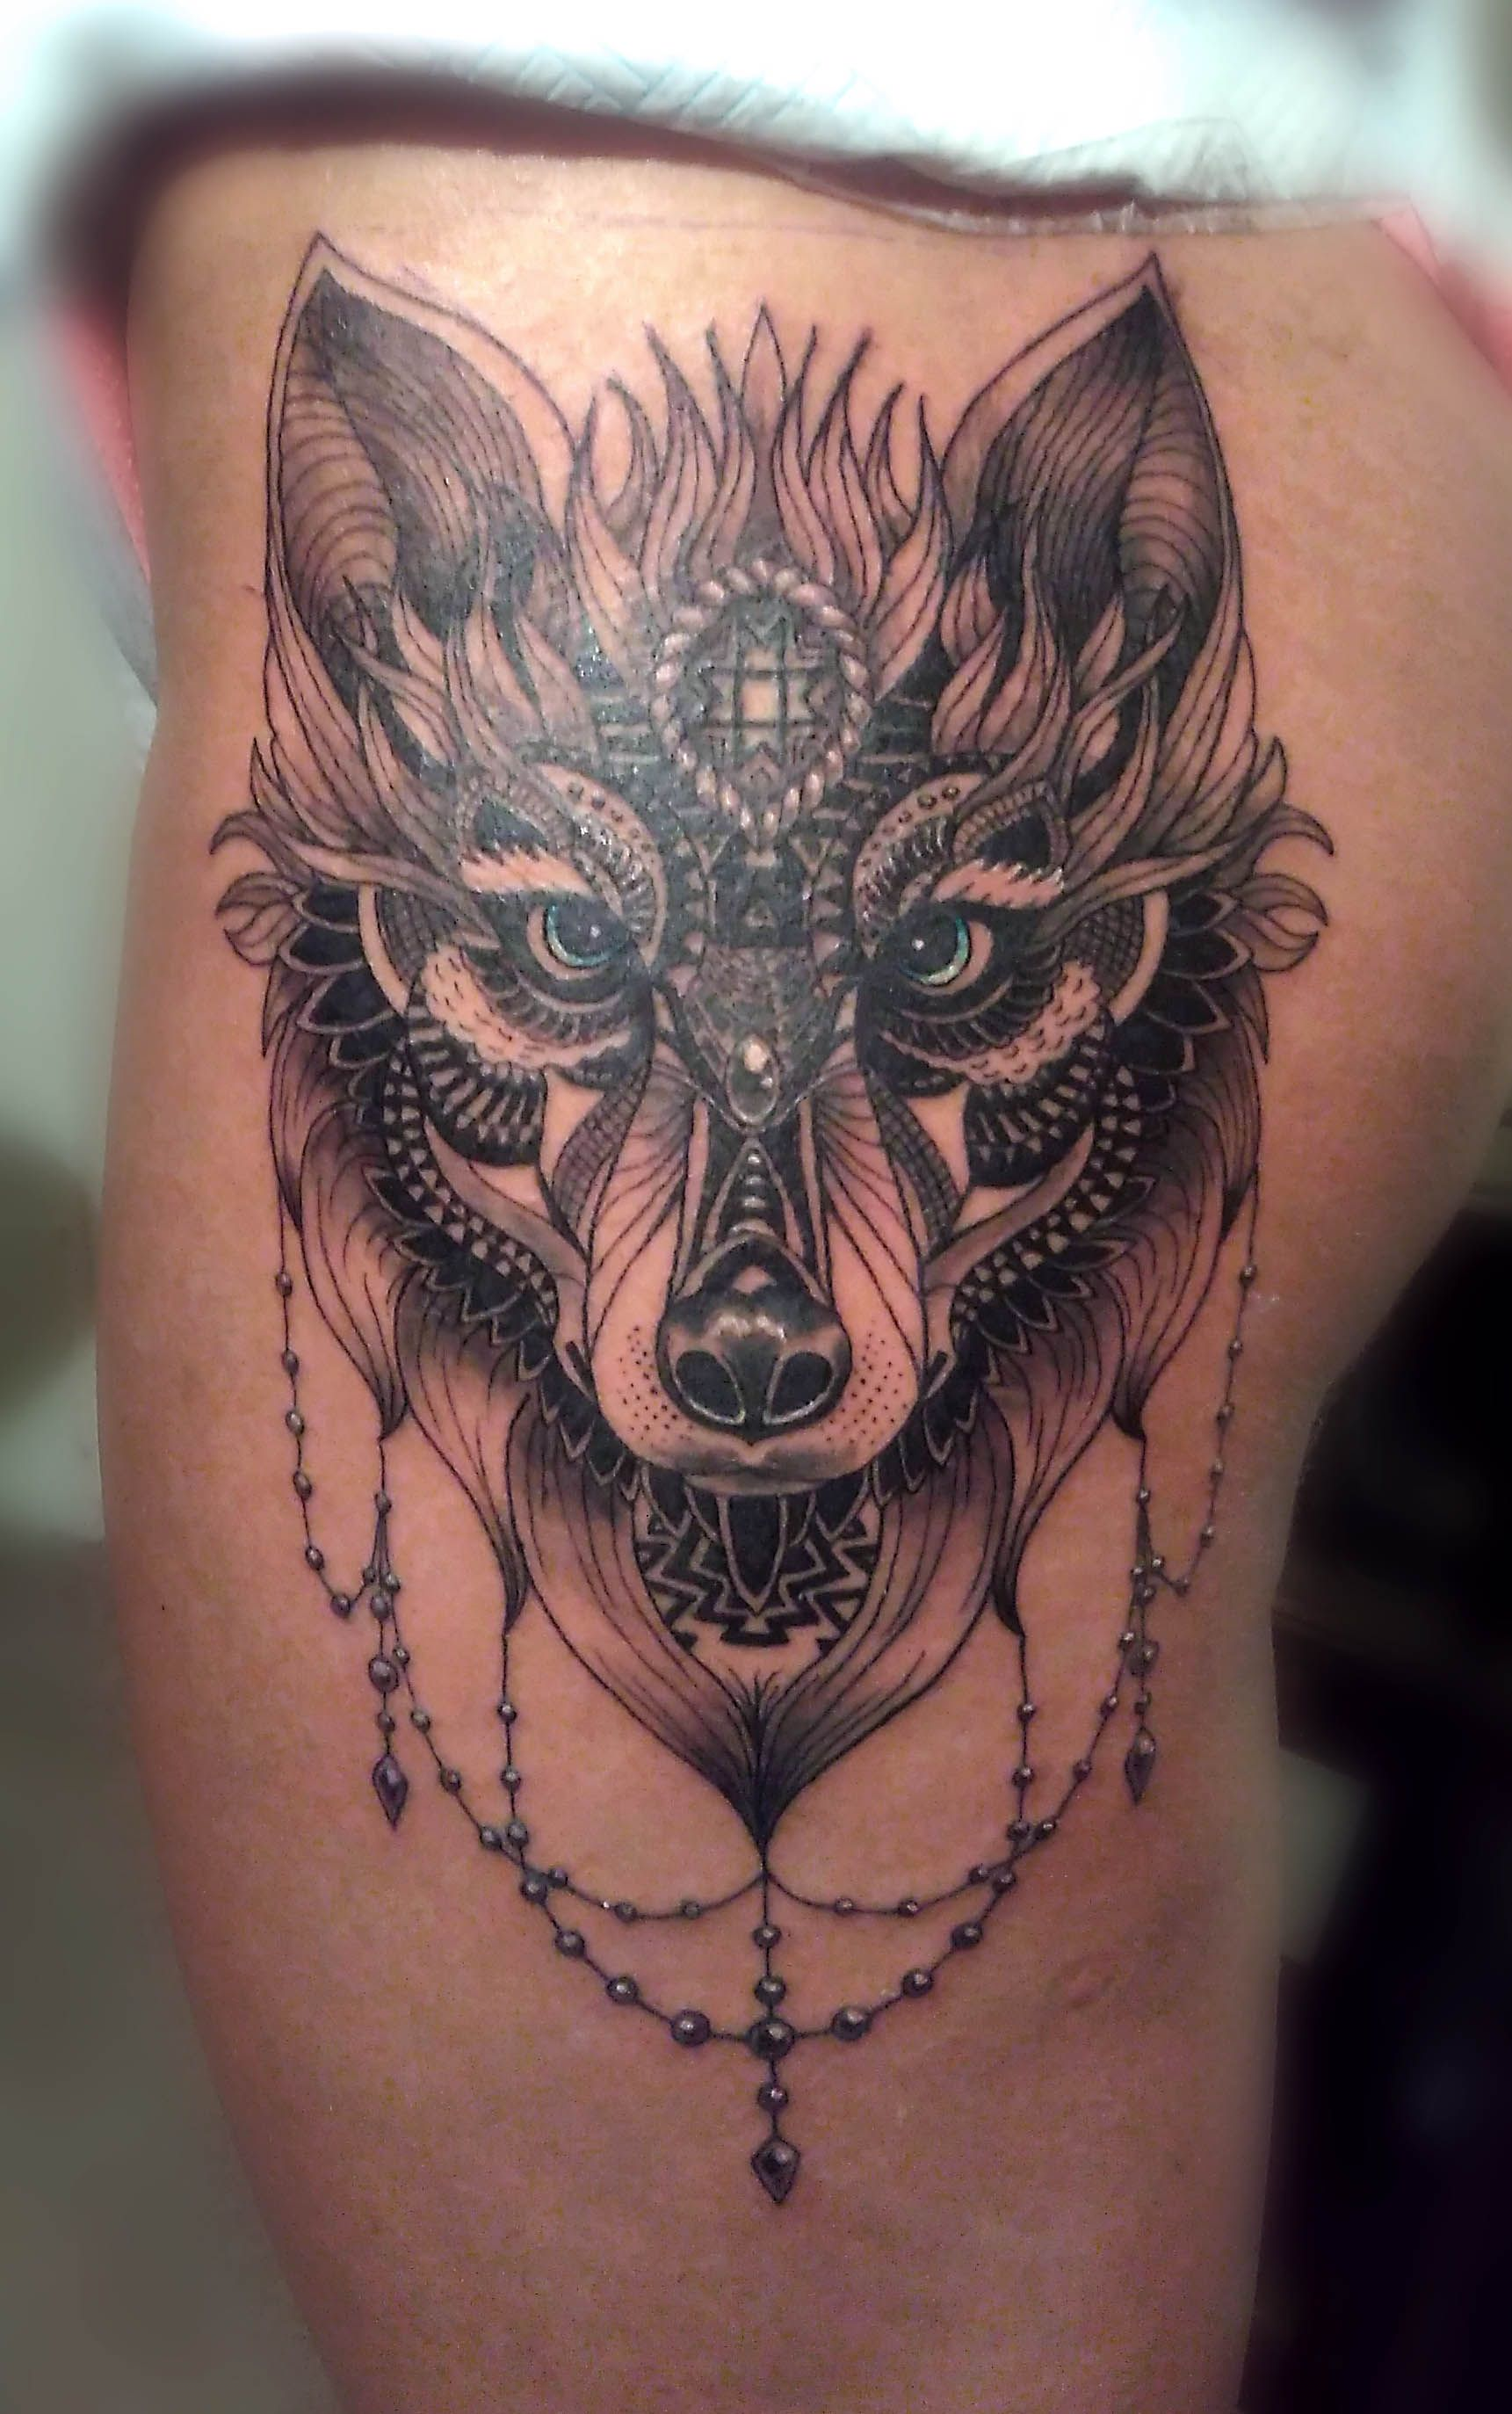 wolf front thigh tattoo ideas pinterest tattoo ideen wolf mond und tattoo vorlagen. Black Bedroom Furniture Sets. Home Design Ideas